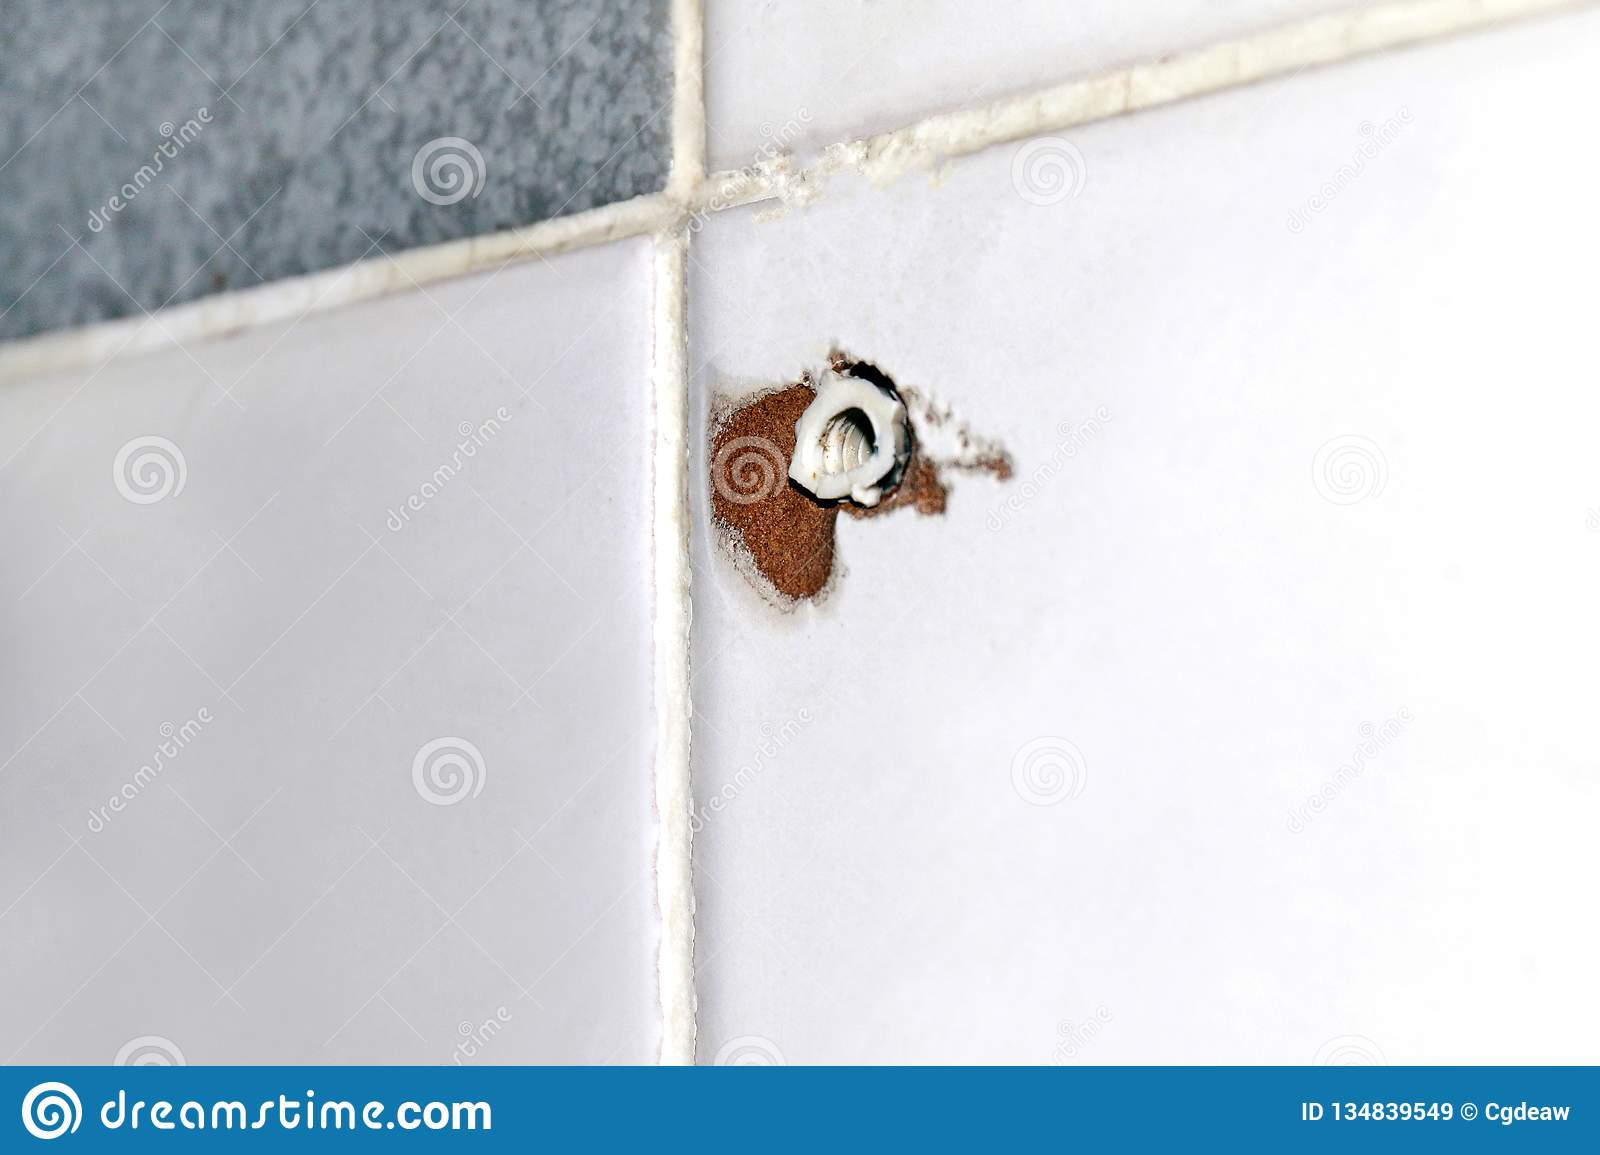 Hole of expansion bolt old at tile wall, old plastic anchors for dowels screws, anchor bolt hole screws on tile, defective